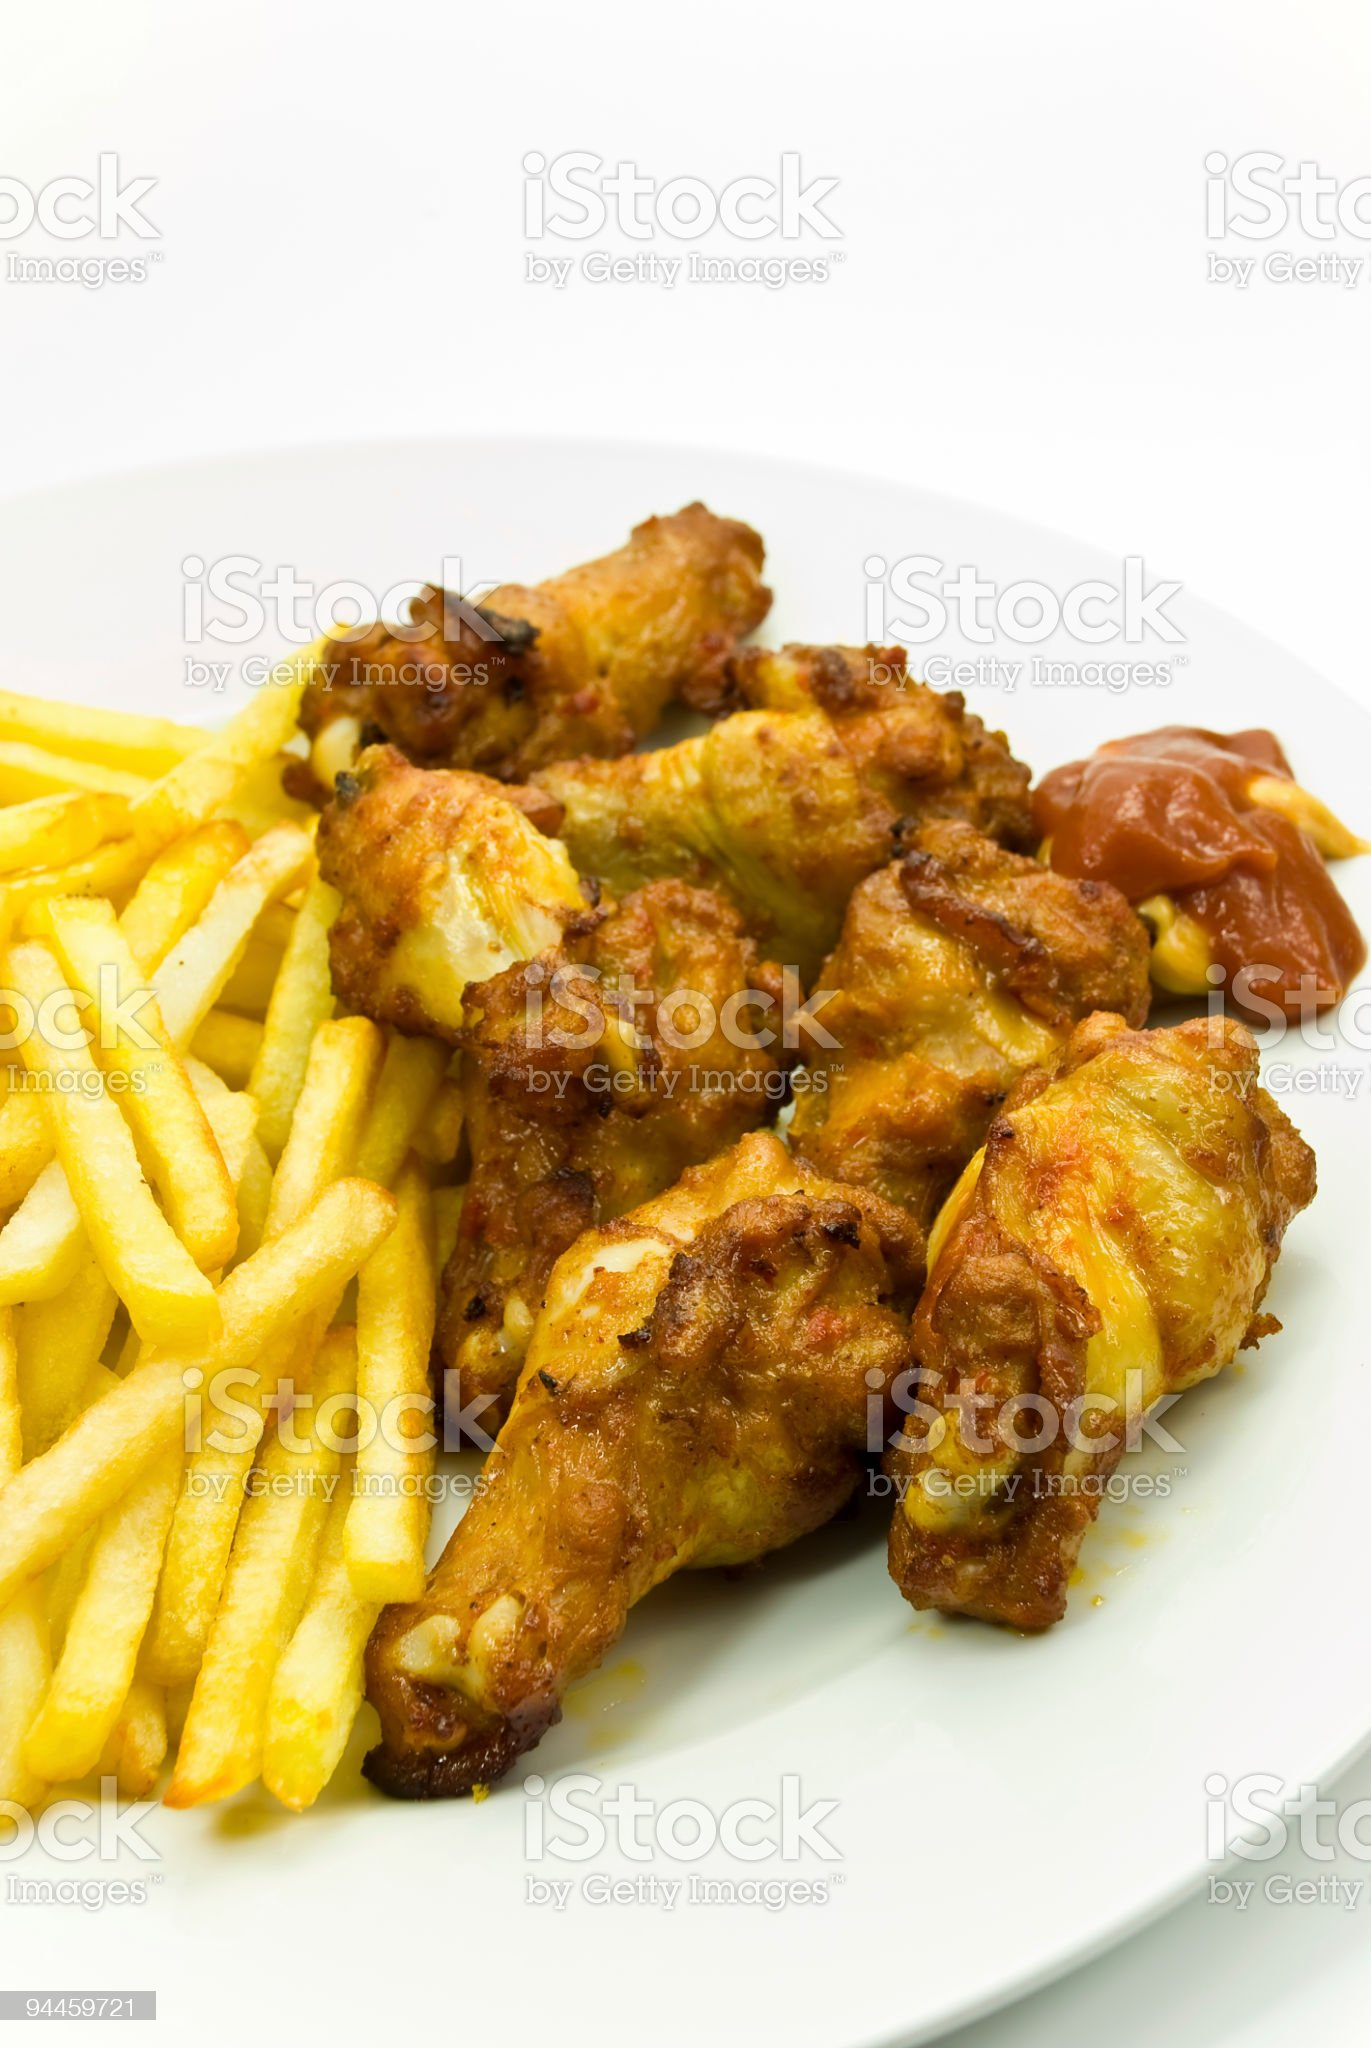 chicken legs with french fried potatoes royalty-free stock photo